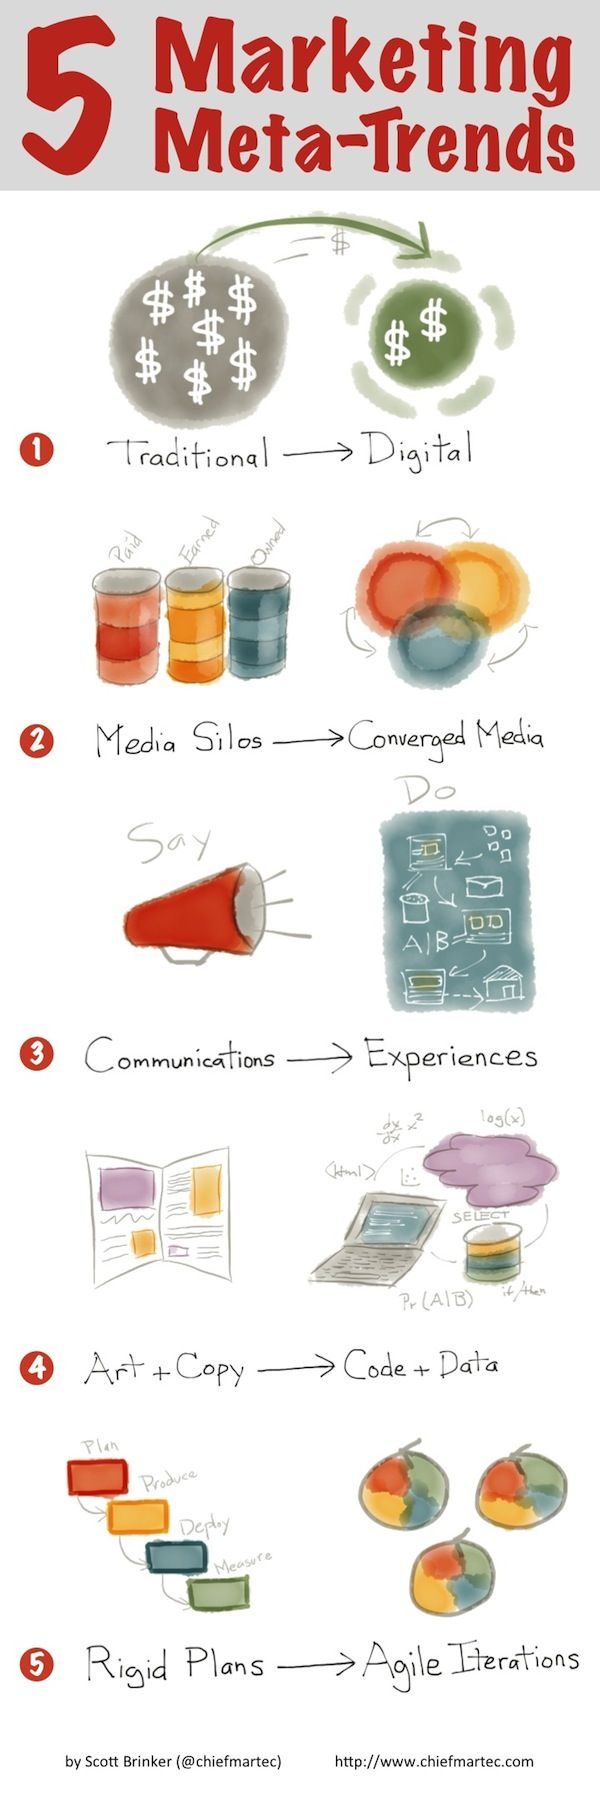 5 meta-trends underlying almost all of modern #marketing from @Scott Brinker. From the old styles to new needs. Especially interested in the transition from art & copy to code & data.